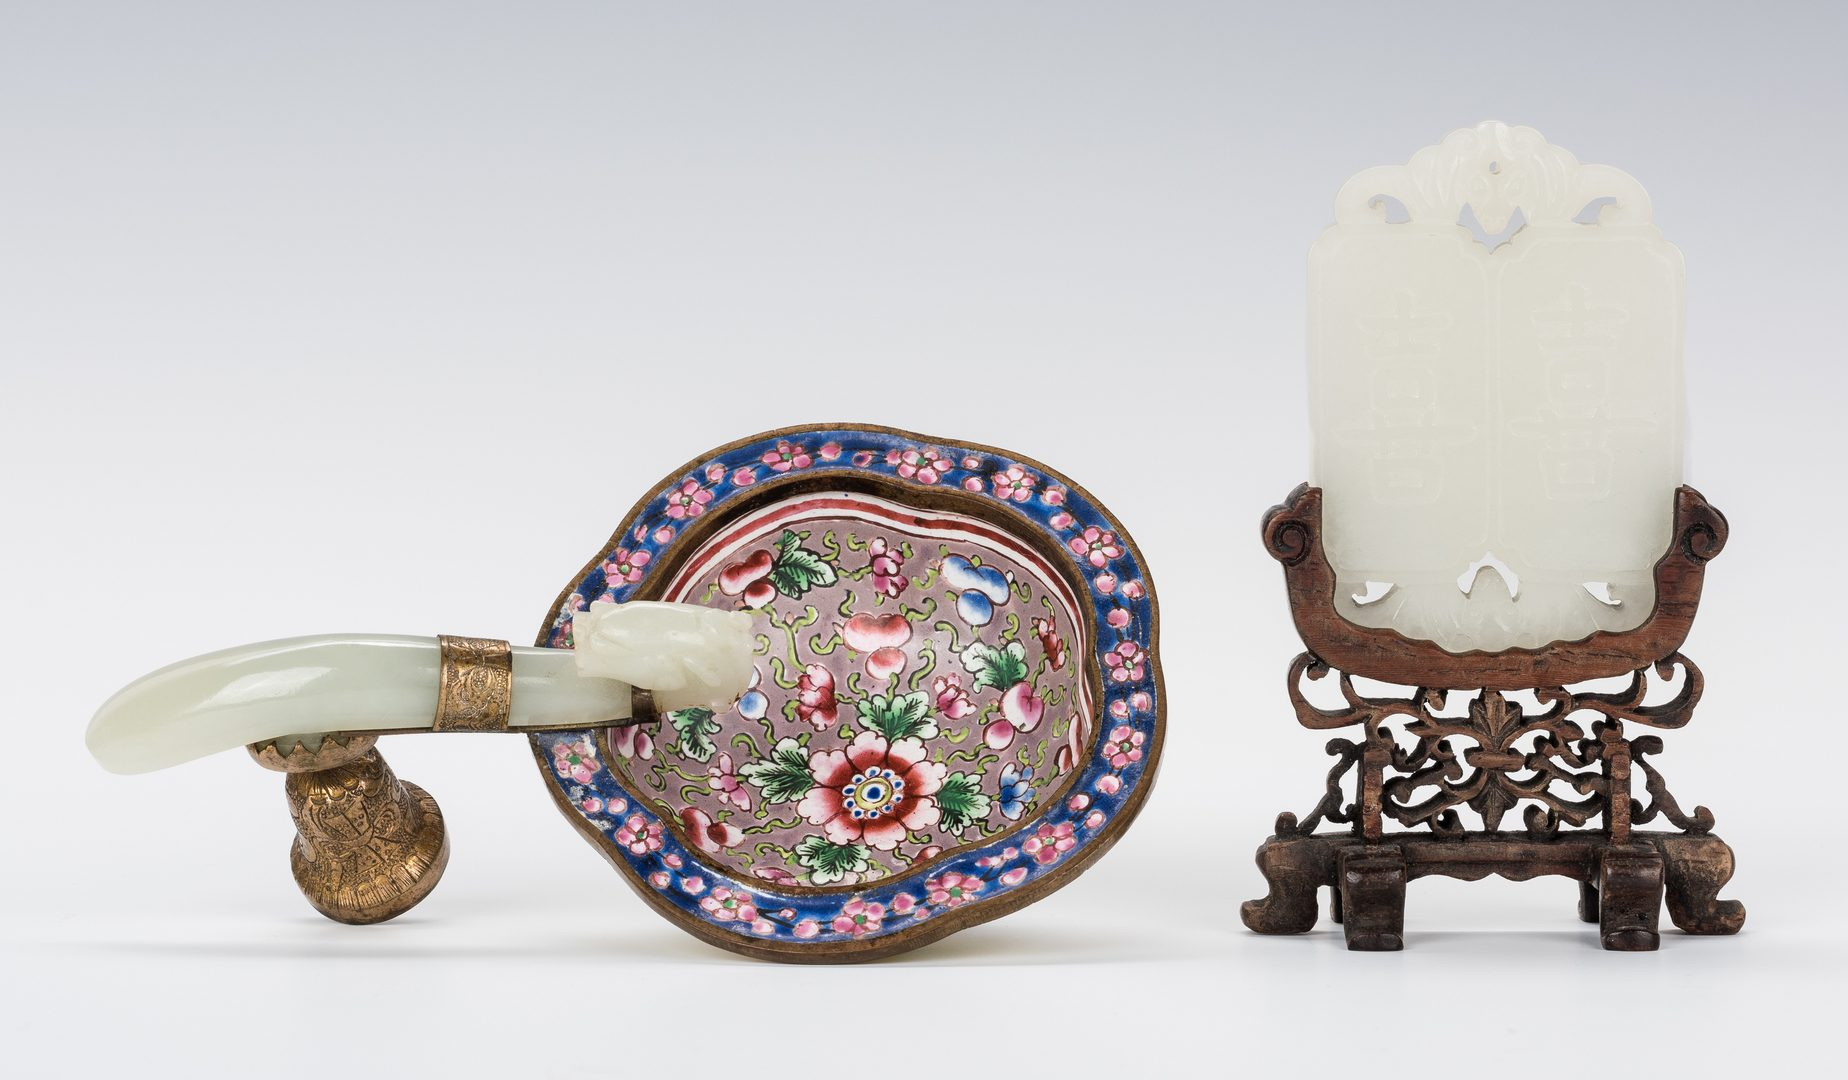 Lot 18: White Jade Plaque and Enamel Dish w/ Jade Handle